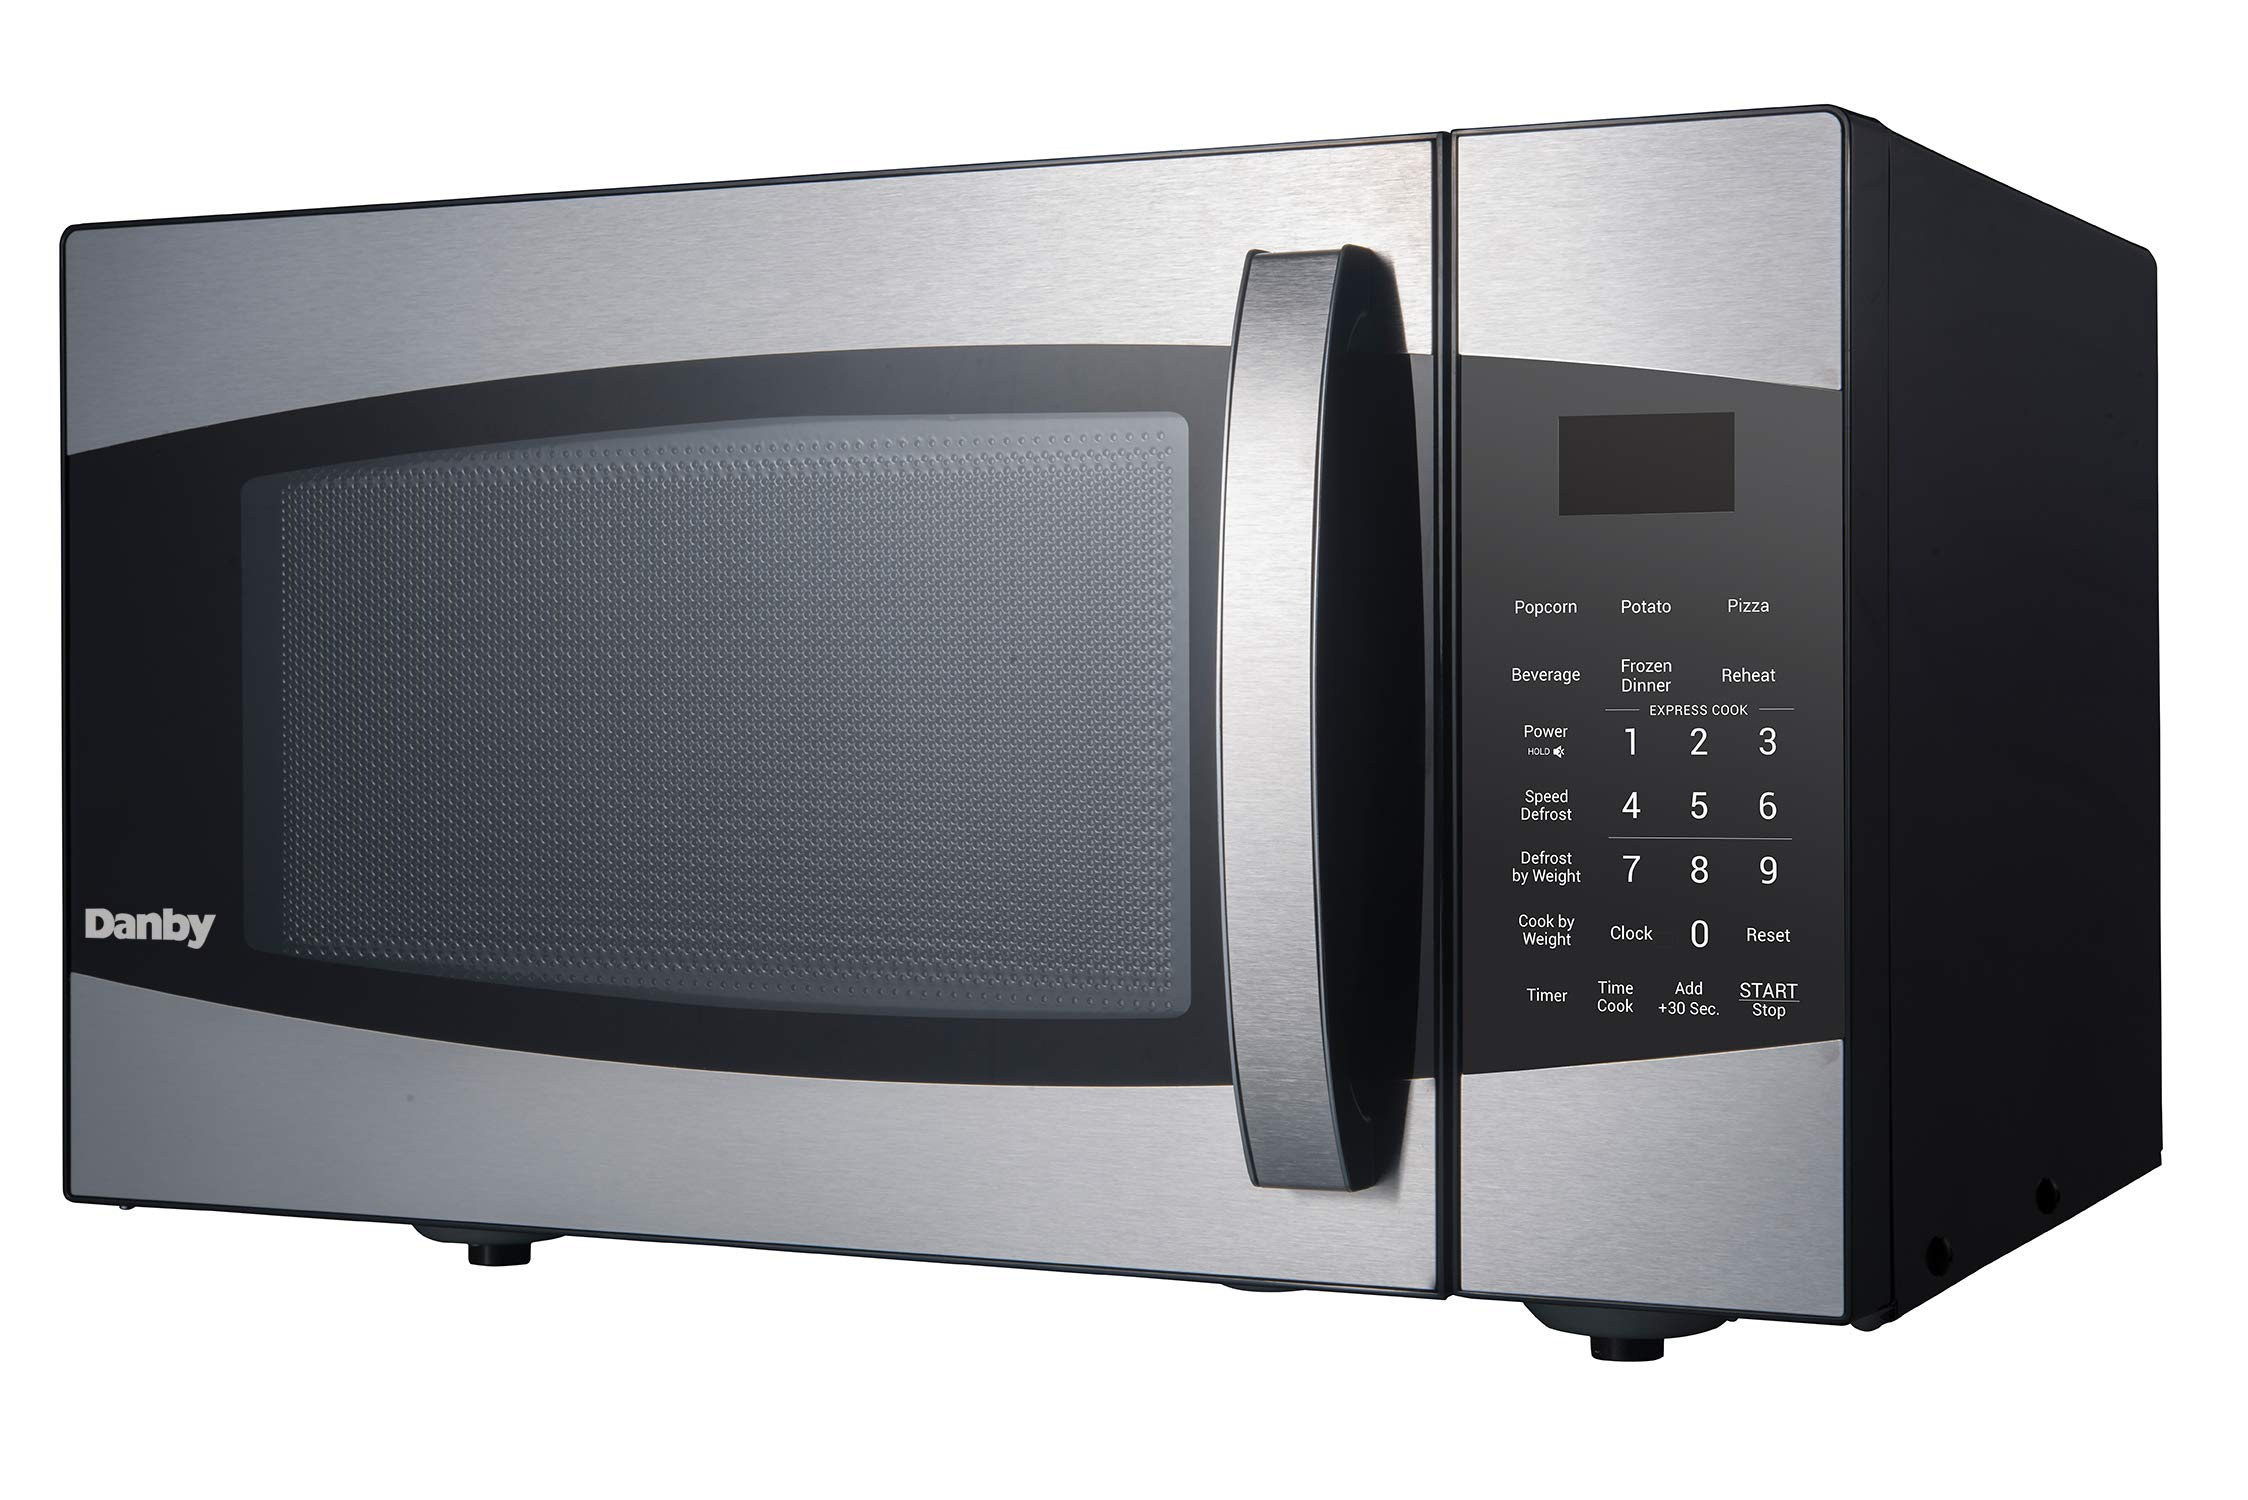 Danby DMW09A2BSSDB/99LD DMW09A2BSSDB 0.9 cu. ft. Microwave Oven, Stainless Steel.9 cu.ft, by Danby